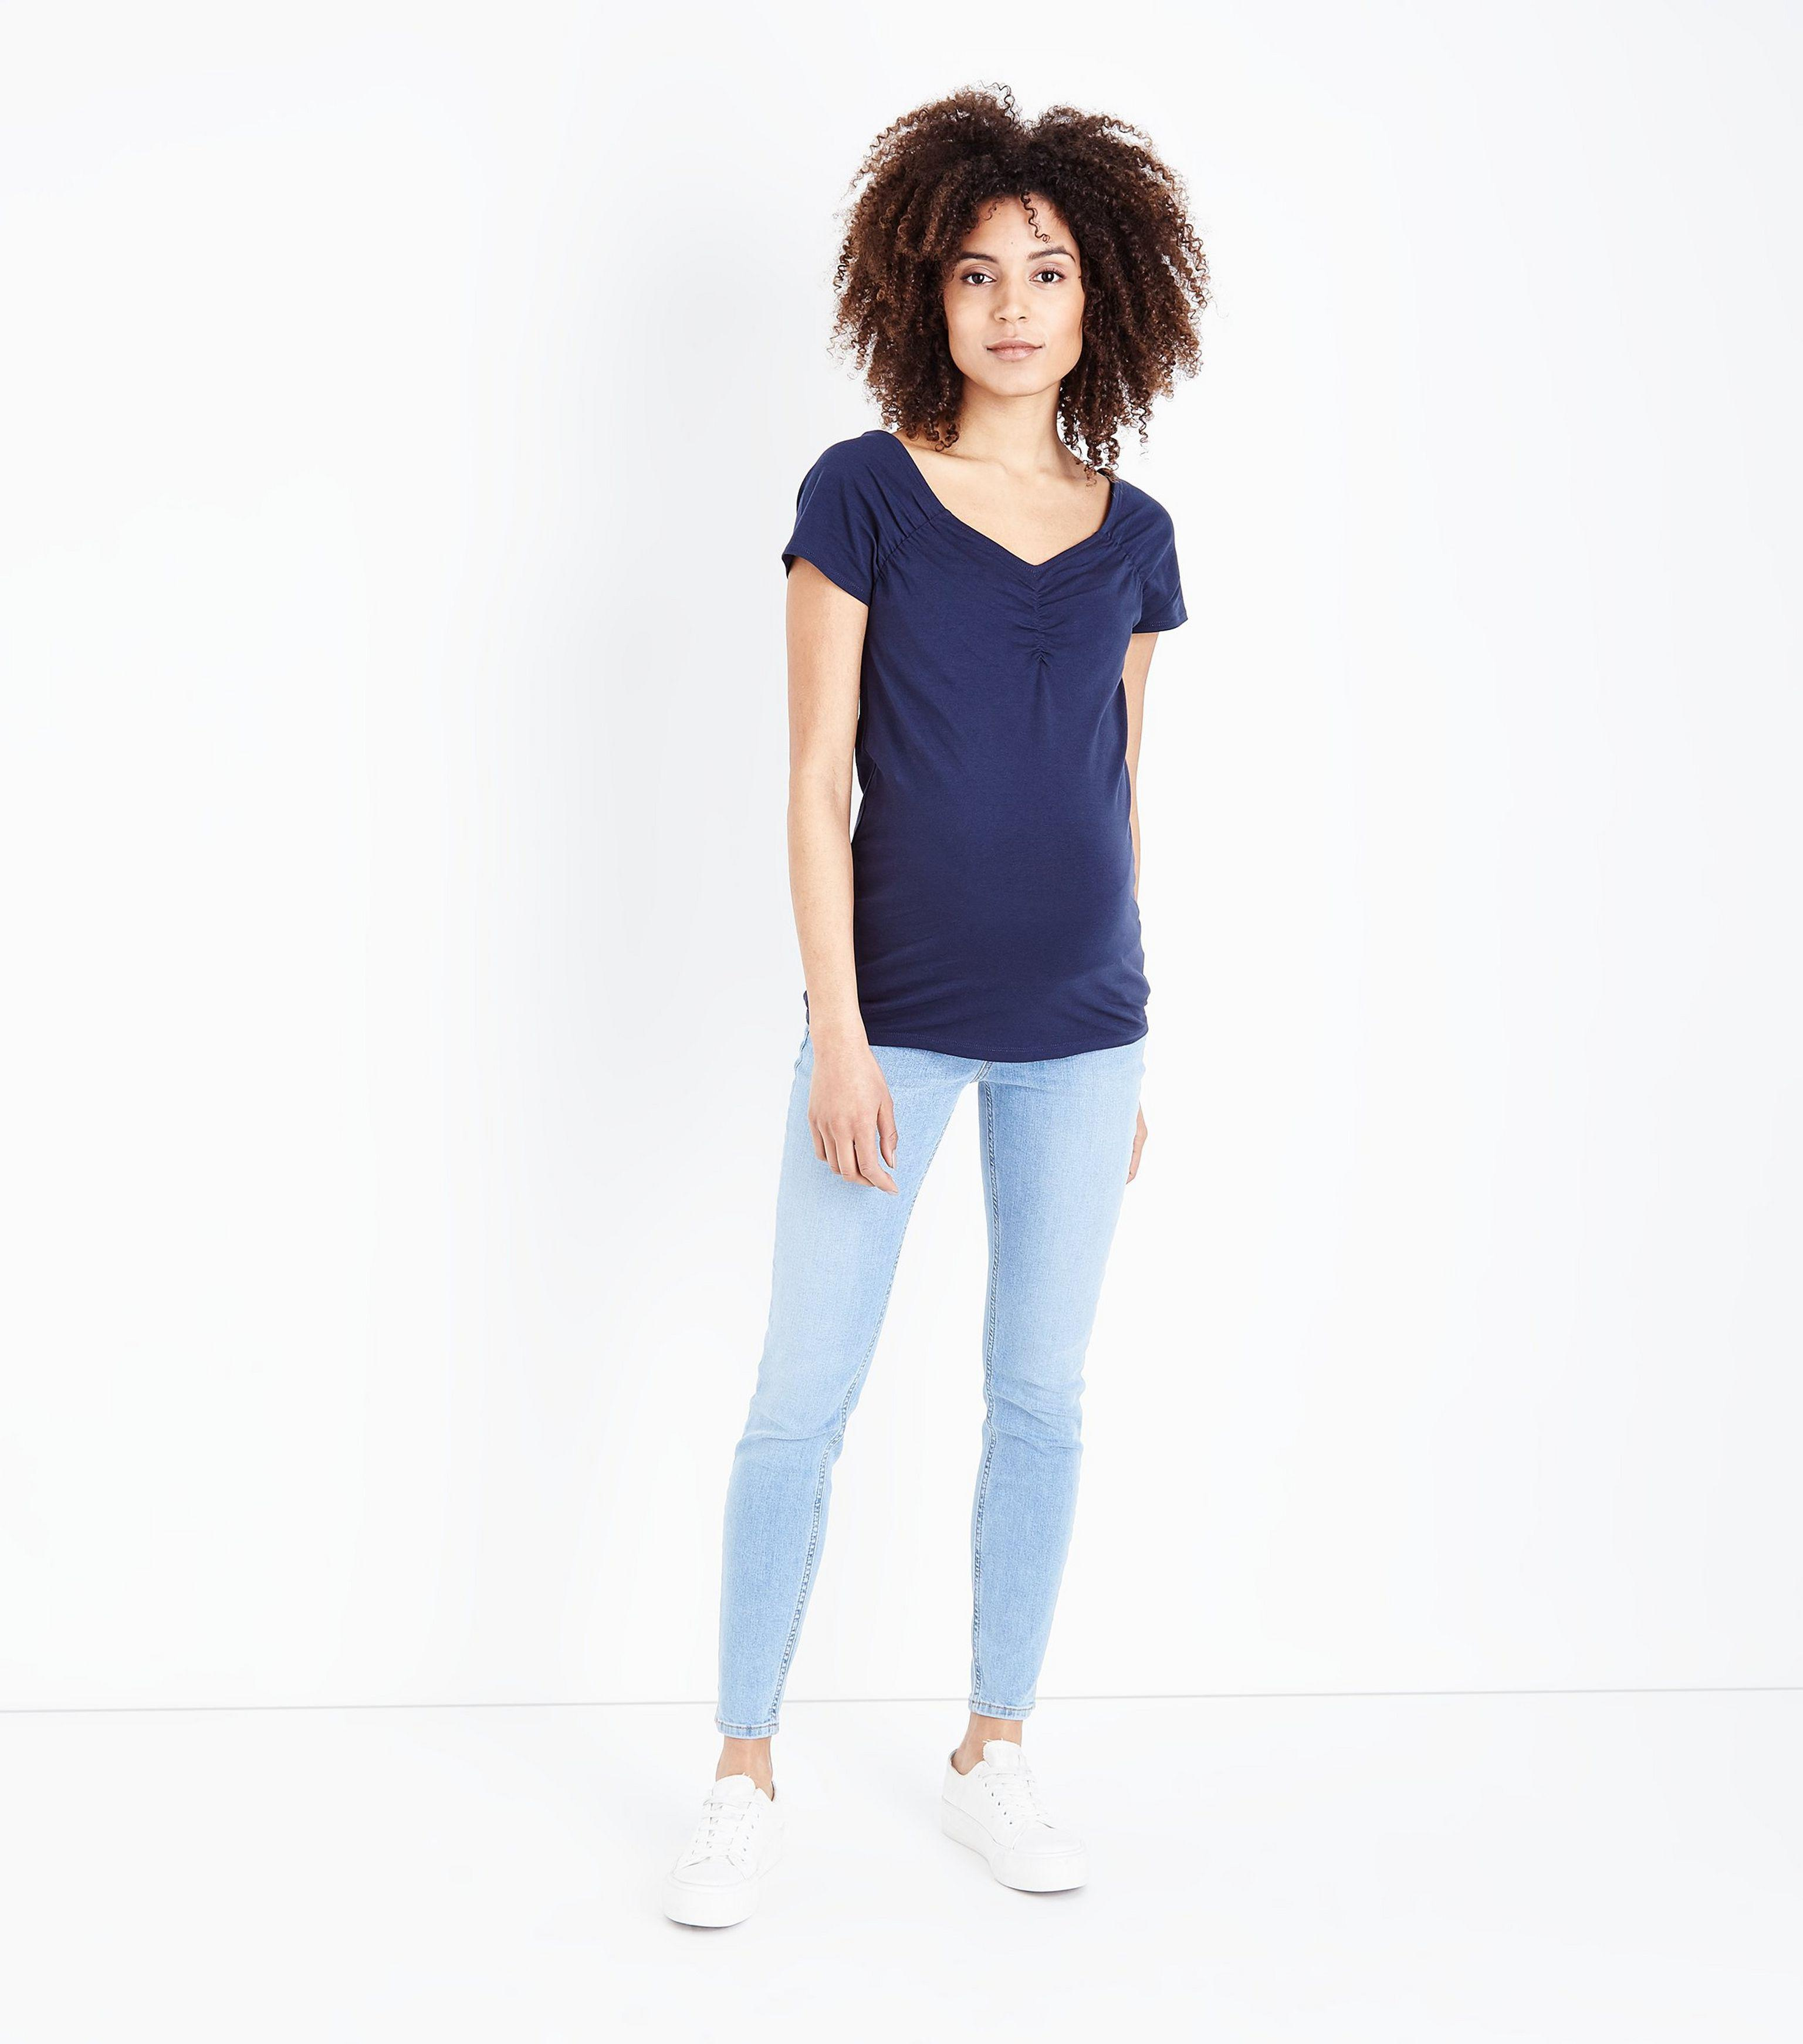 403df49e9dc4d Gallery. Previously sold at: New Look · Women's Maternity Jeans ...